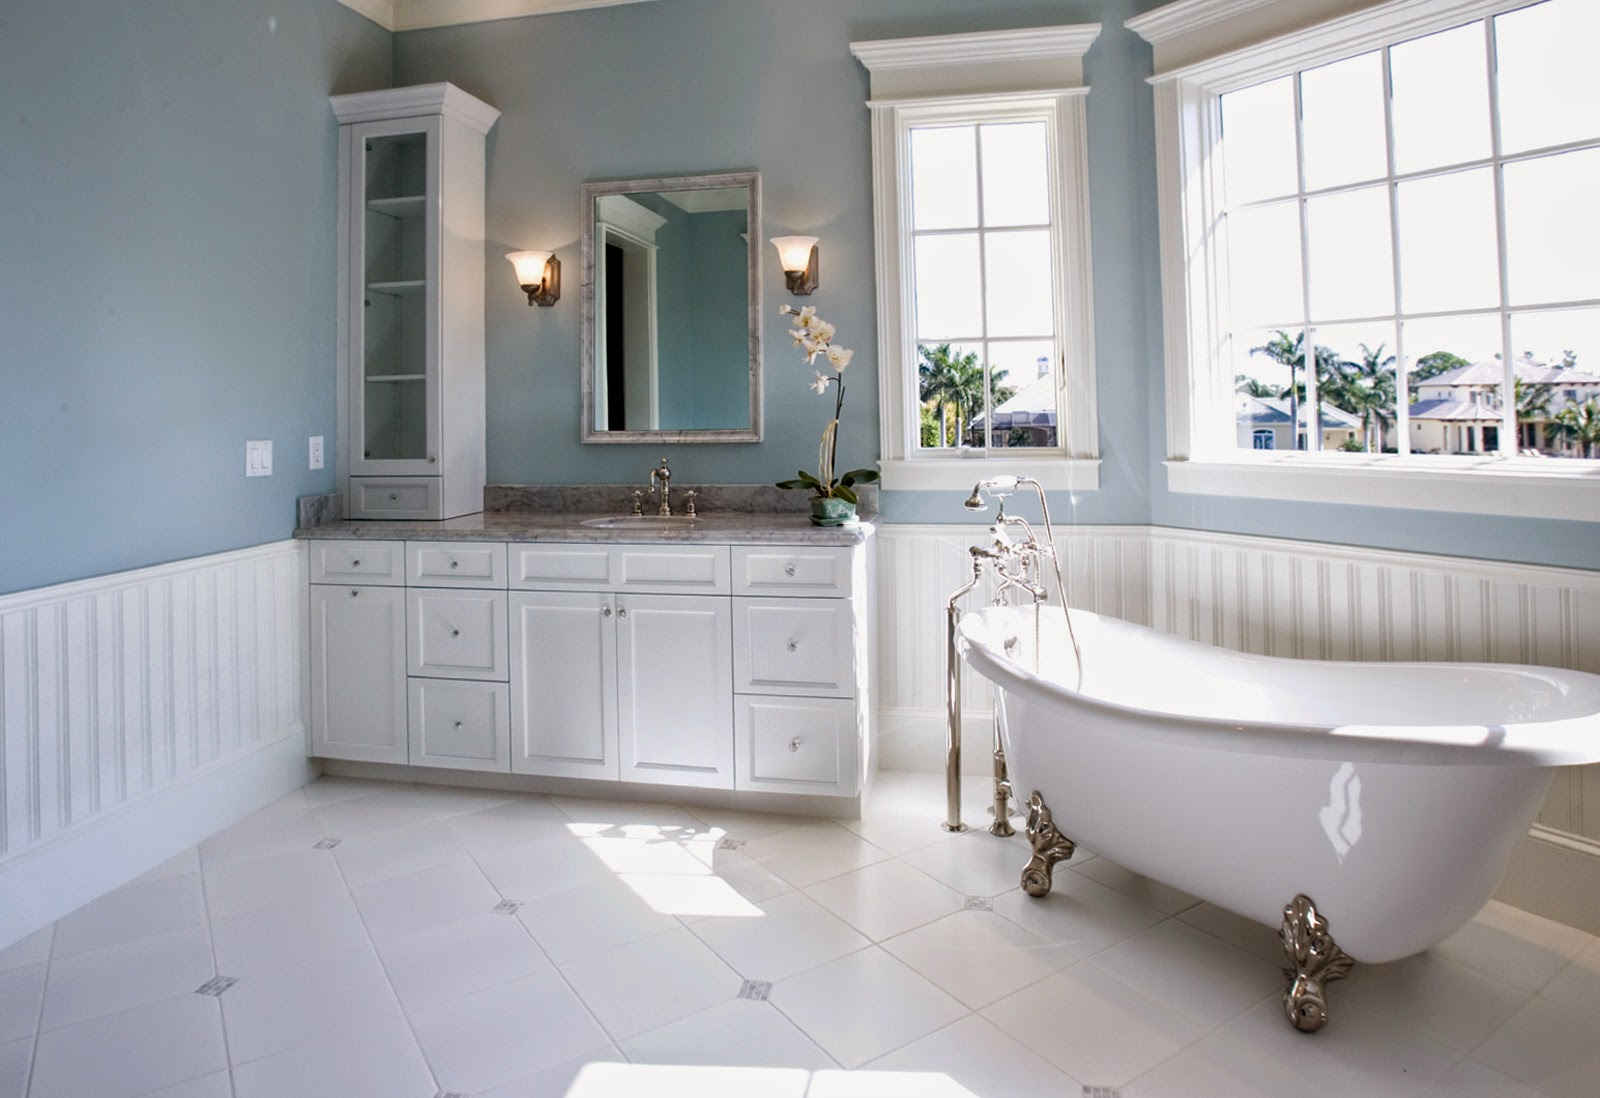 Top 10 beautiful bathroom design 2014 home interior blog for Bathroom designs com